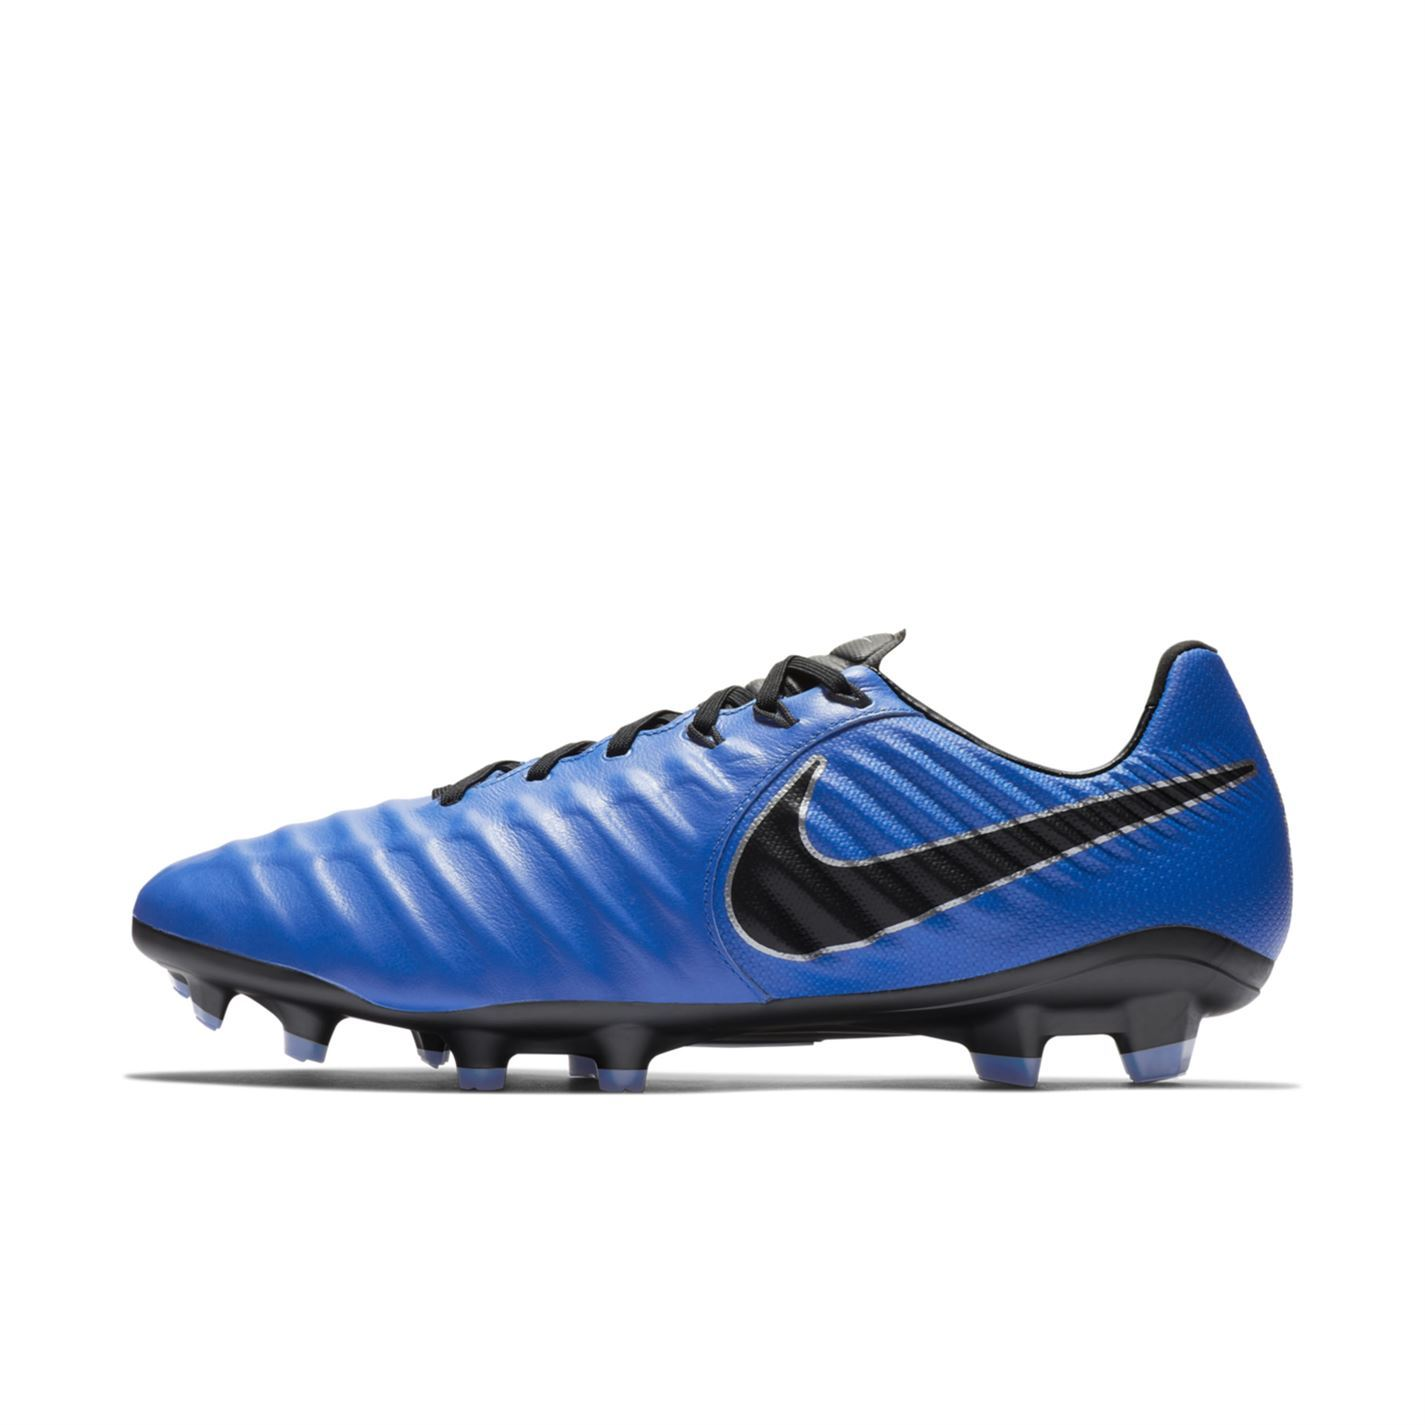 Nike-Tiempo-Legend-Pro-FG-Firm-Ground-Football-Boots-Mens-Soccer-Shoes-Cleats